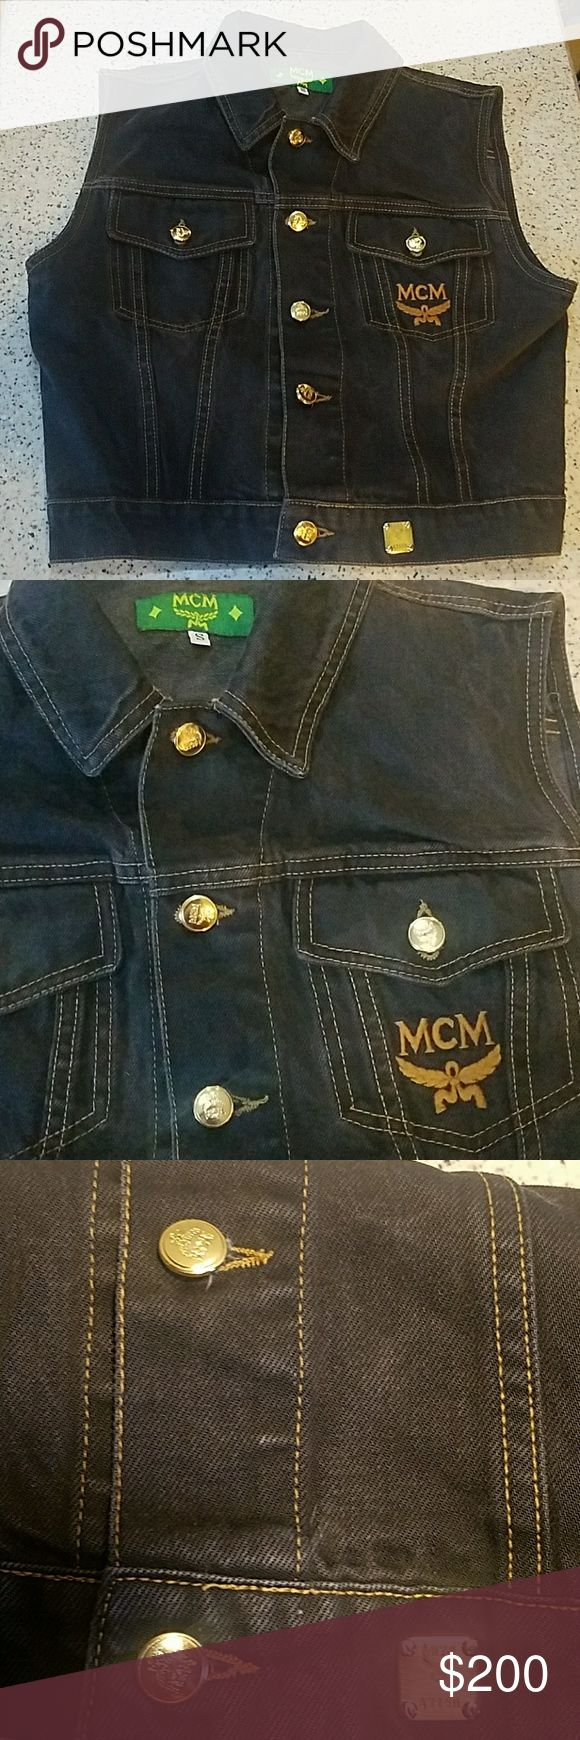 Vintage MCM Washed Out Black Denim Vest Great condition! Some scratches on the hardware but overall amazing vintage vest. MCM Jackets & Coats Vests